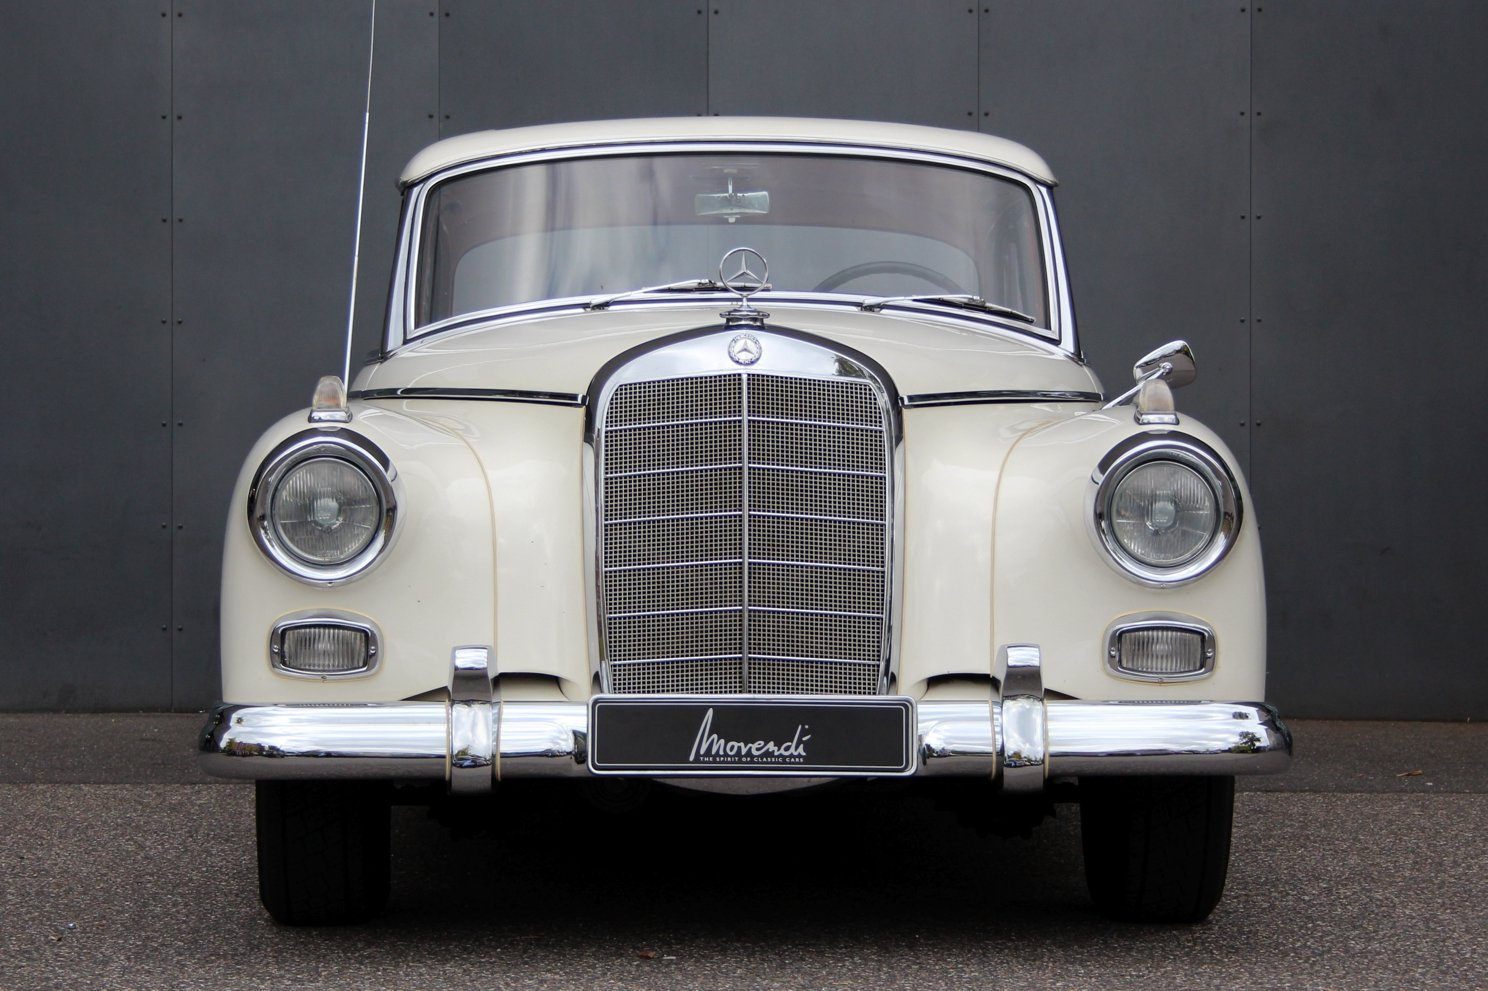 1958 Mercedes-Benz Typ 300 D - Adenauer - Automatic LHD For Sale (picture 6 of 6)